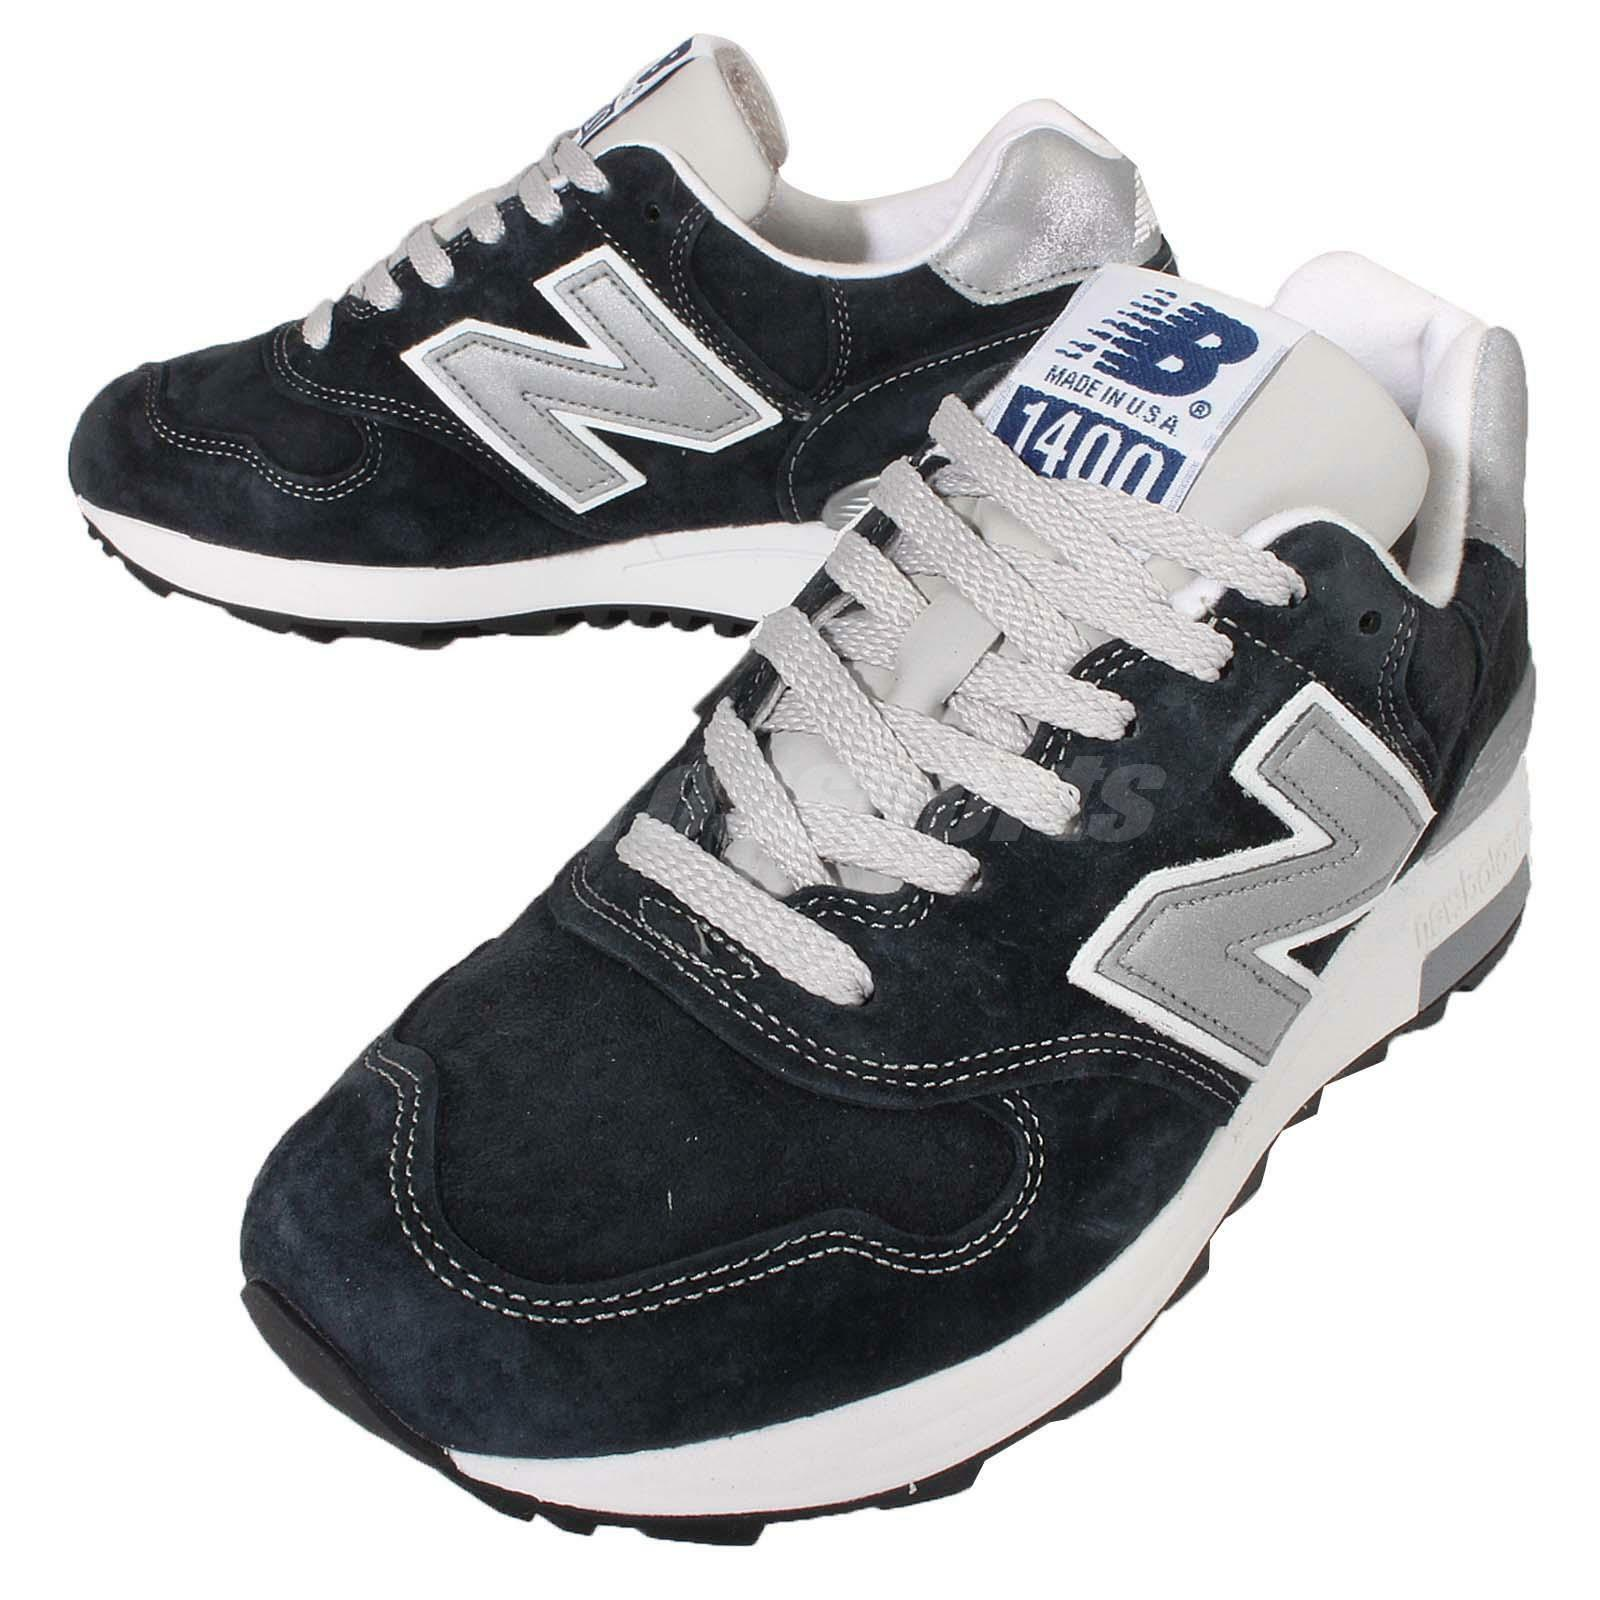 New Plata Balance M20180NV D Navy Plata New Hombre Retro Running Zapatos  Made In USA M20180NVD 80508b